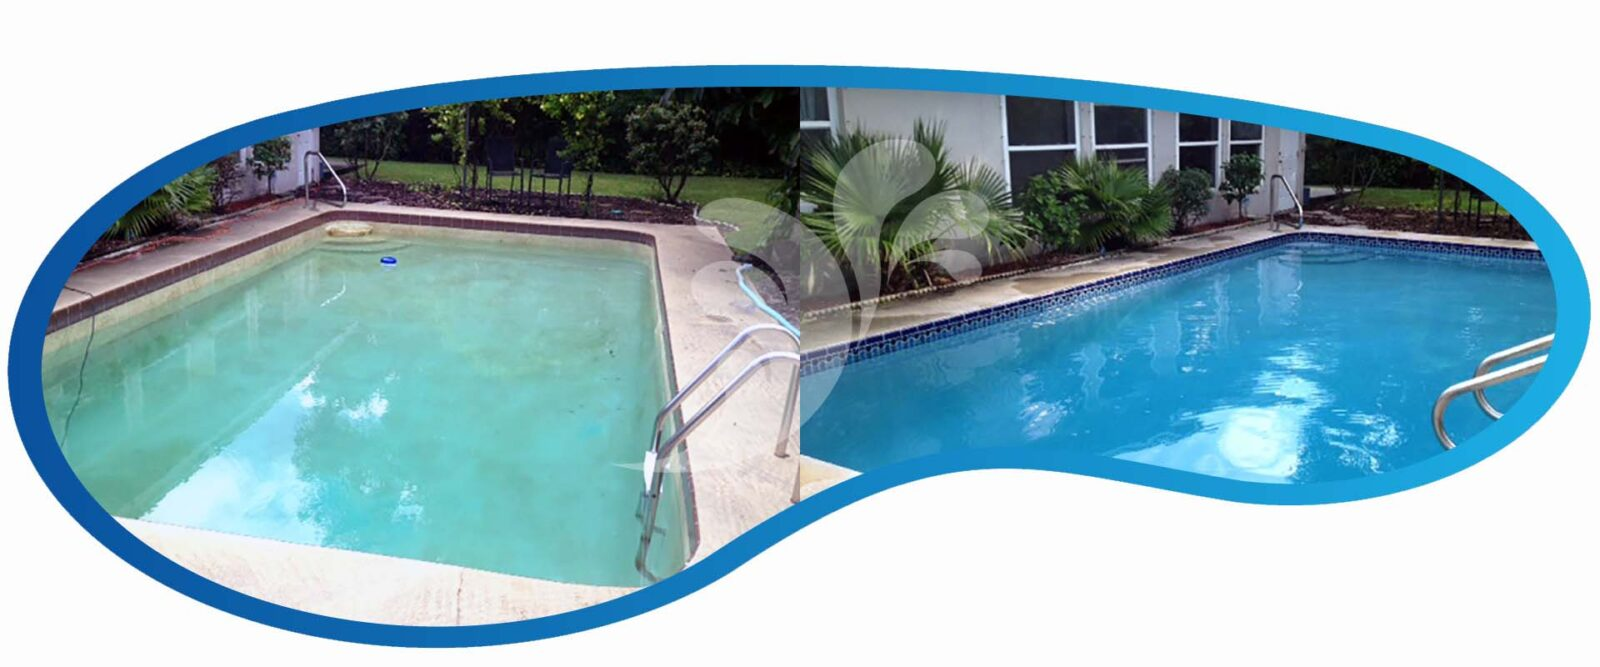 Pool Remodeling by Fresh Finish Pools